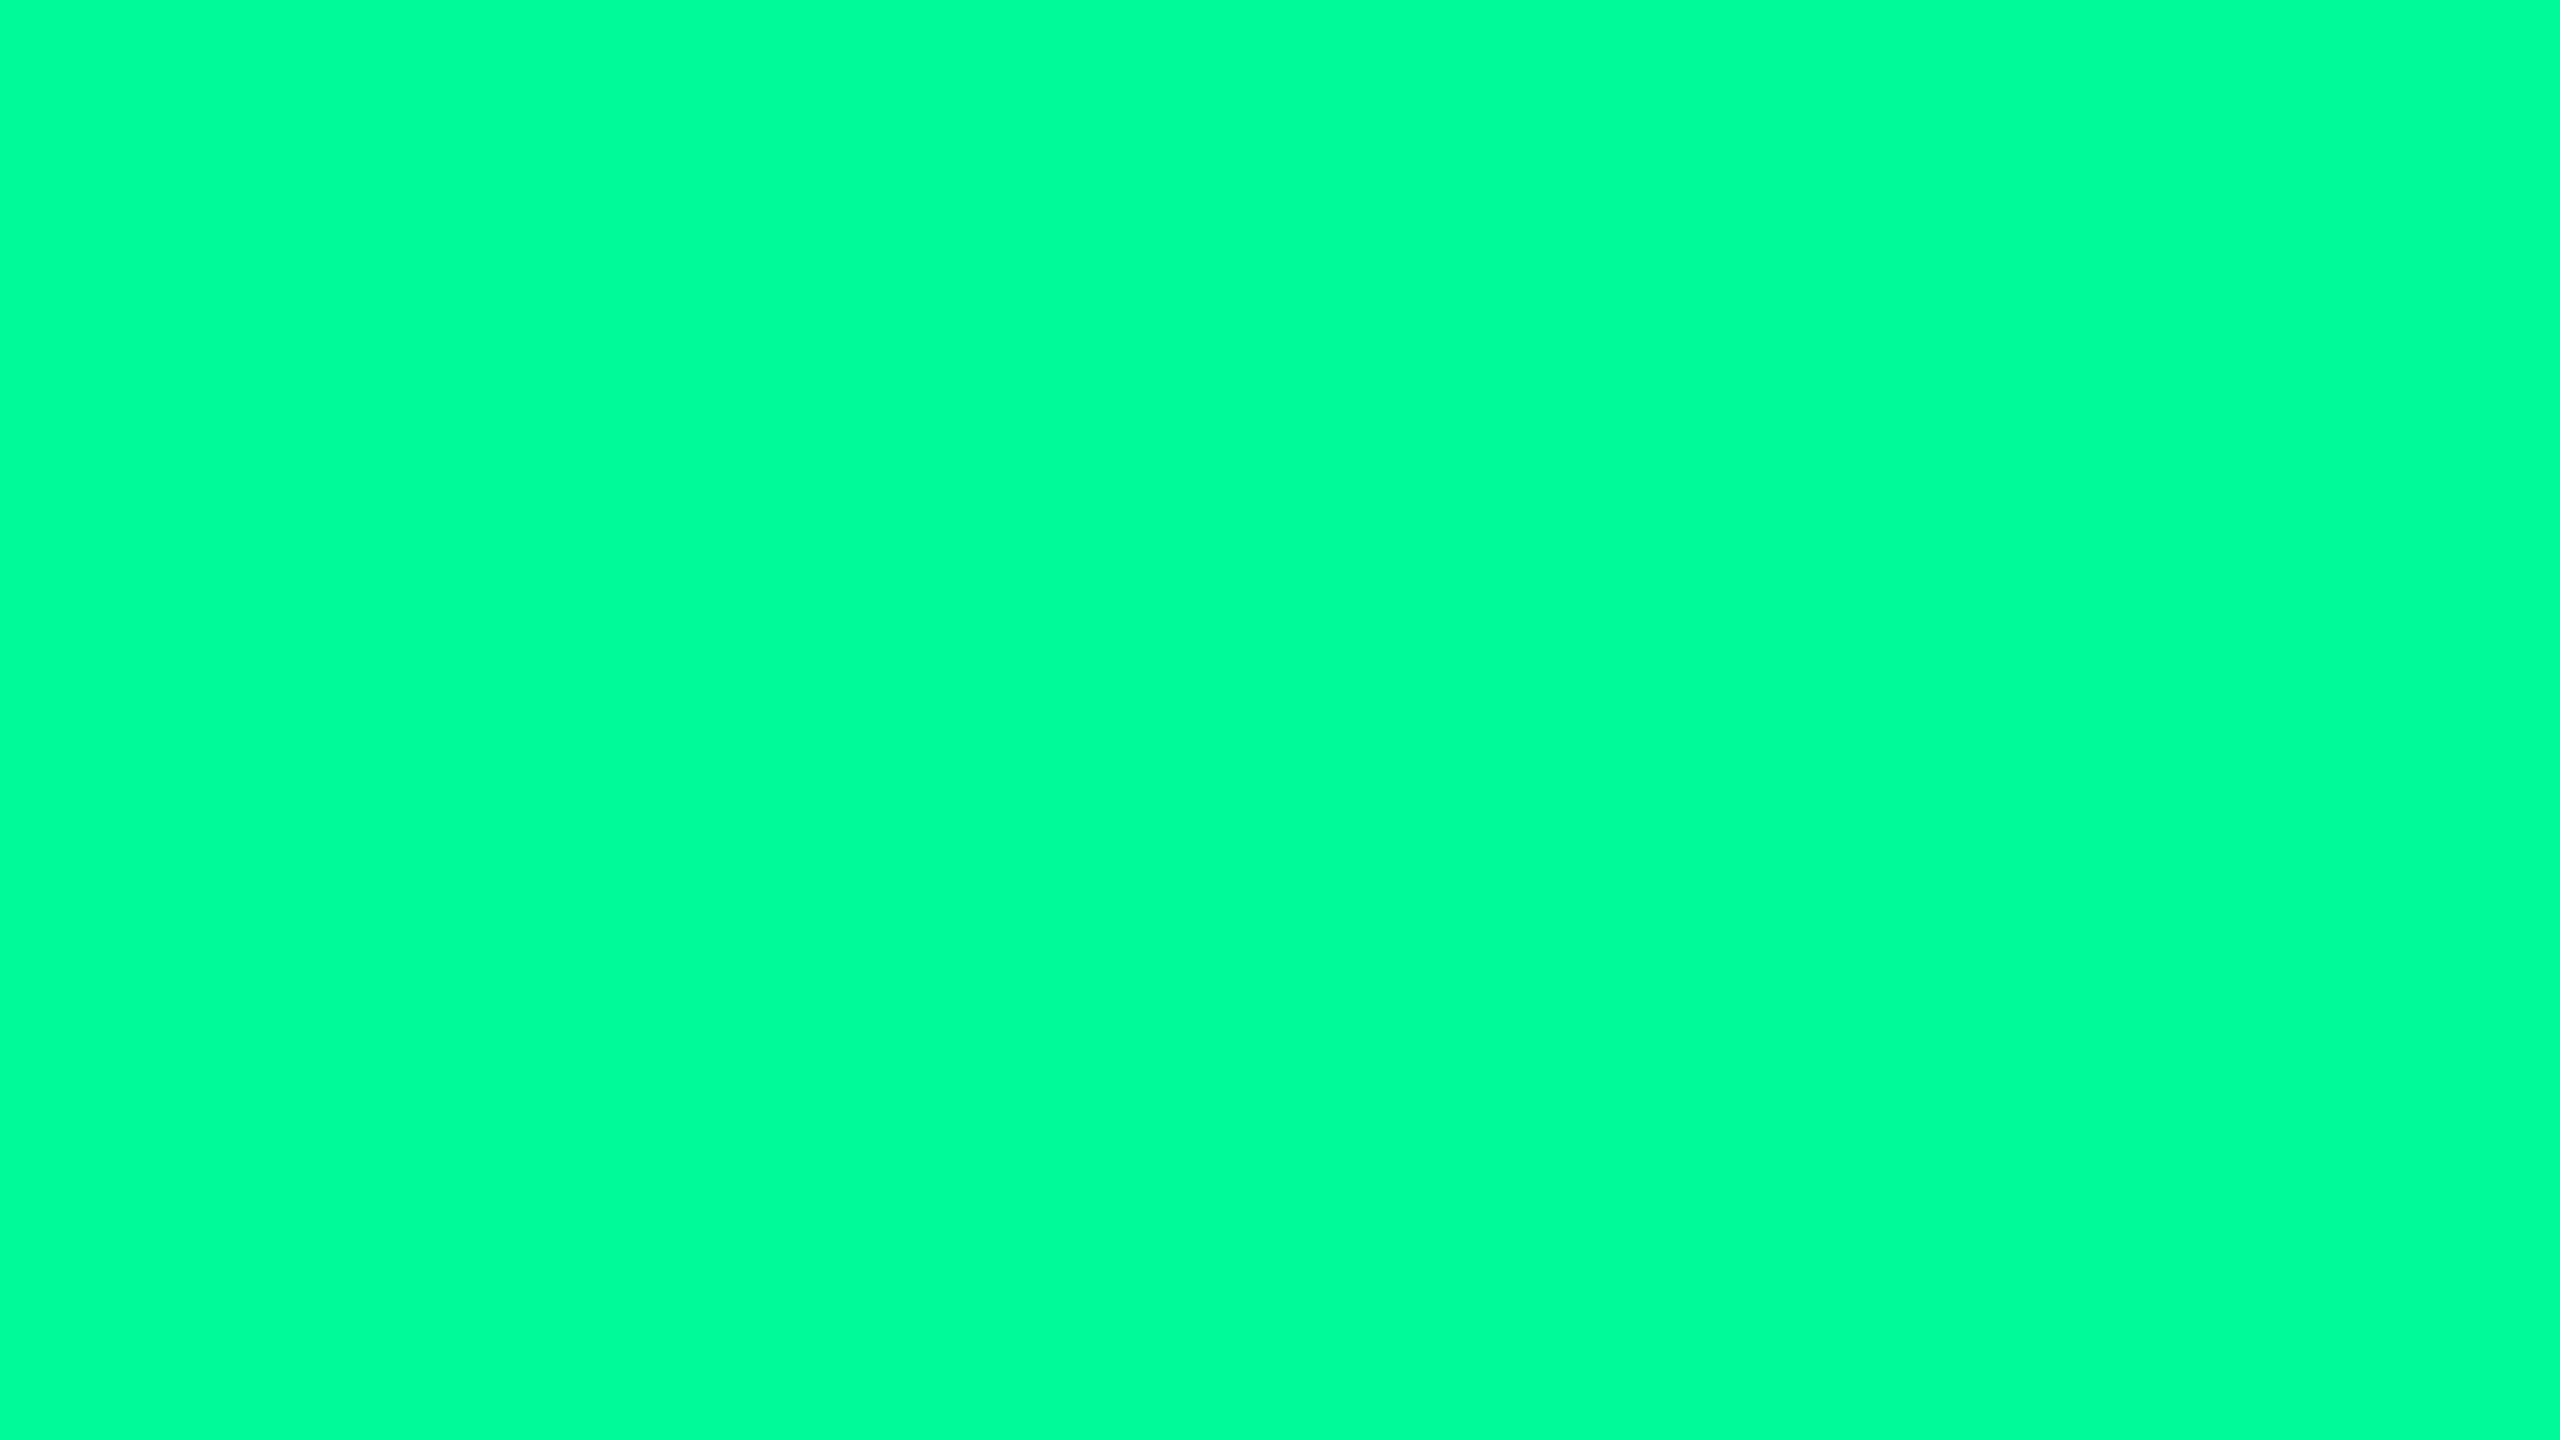 2560x1440 - Solid Green 18